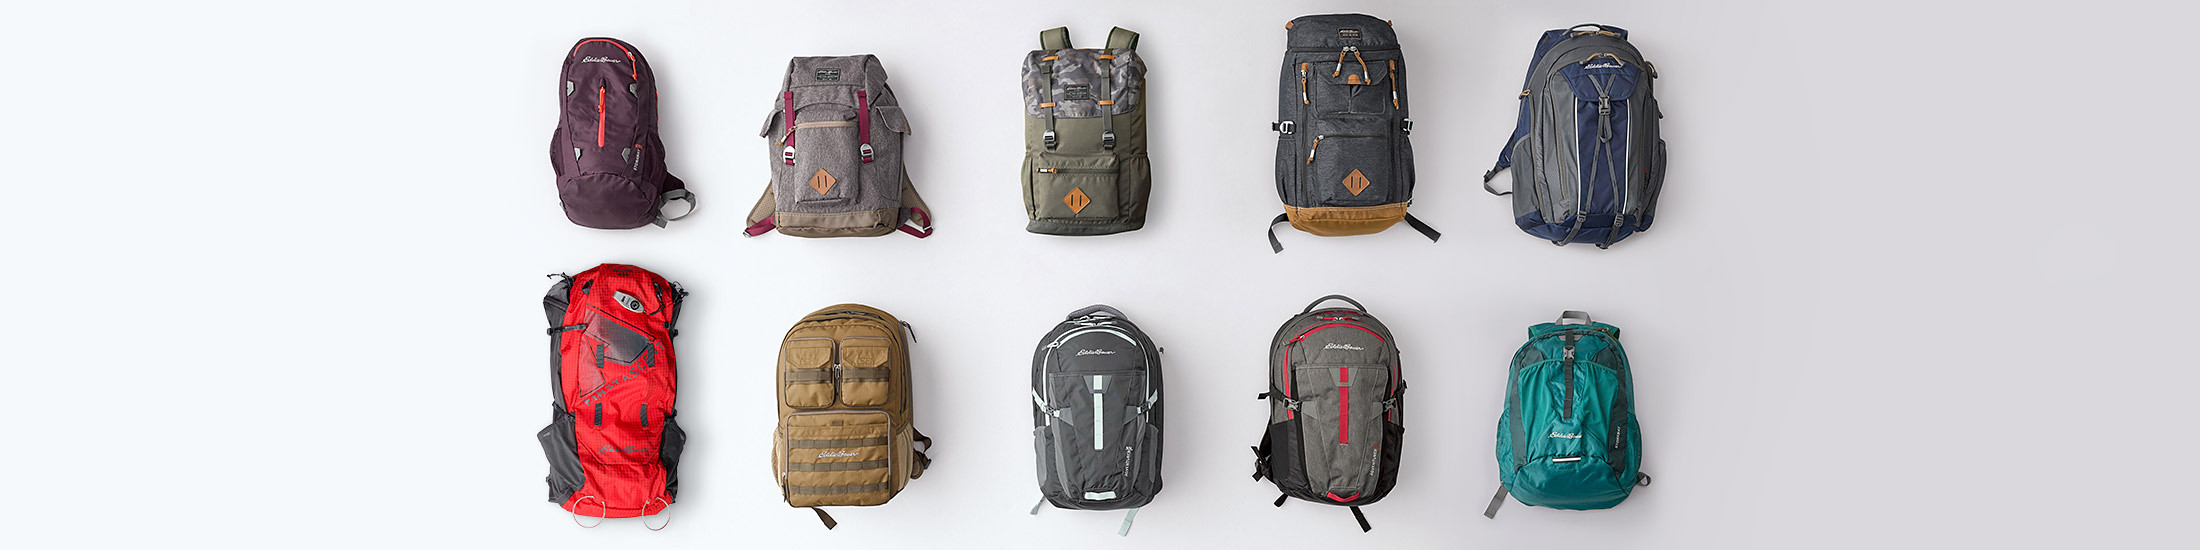 Different styles and colors of backpacks